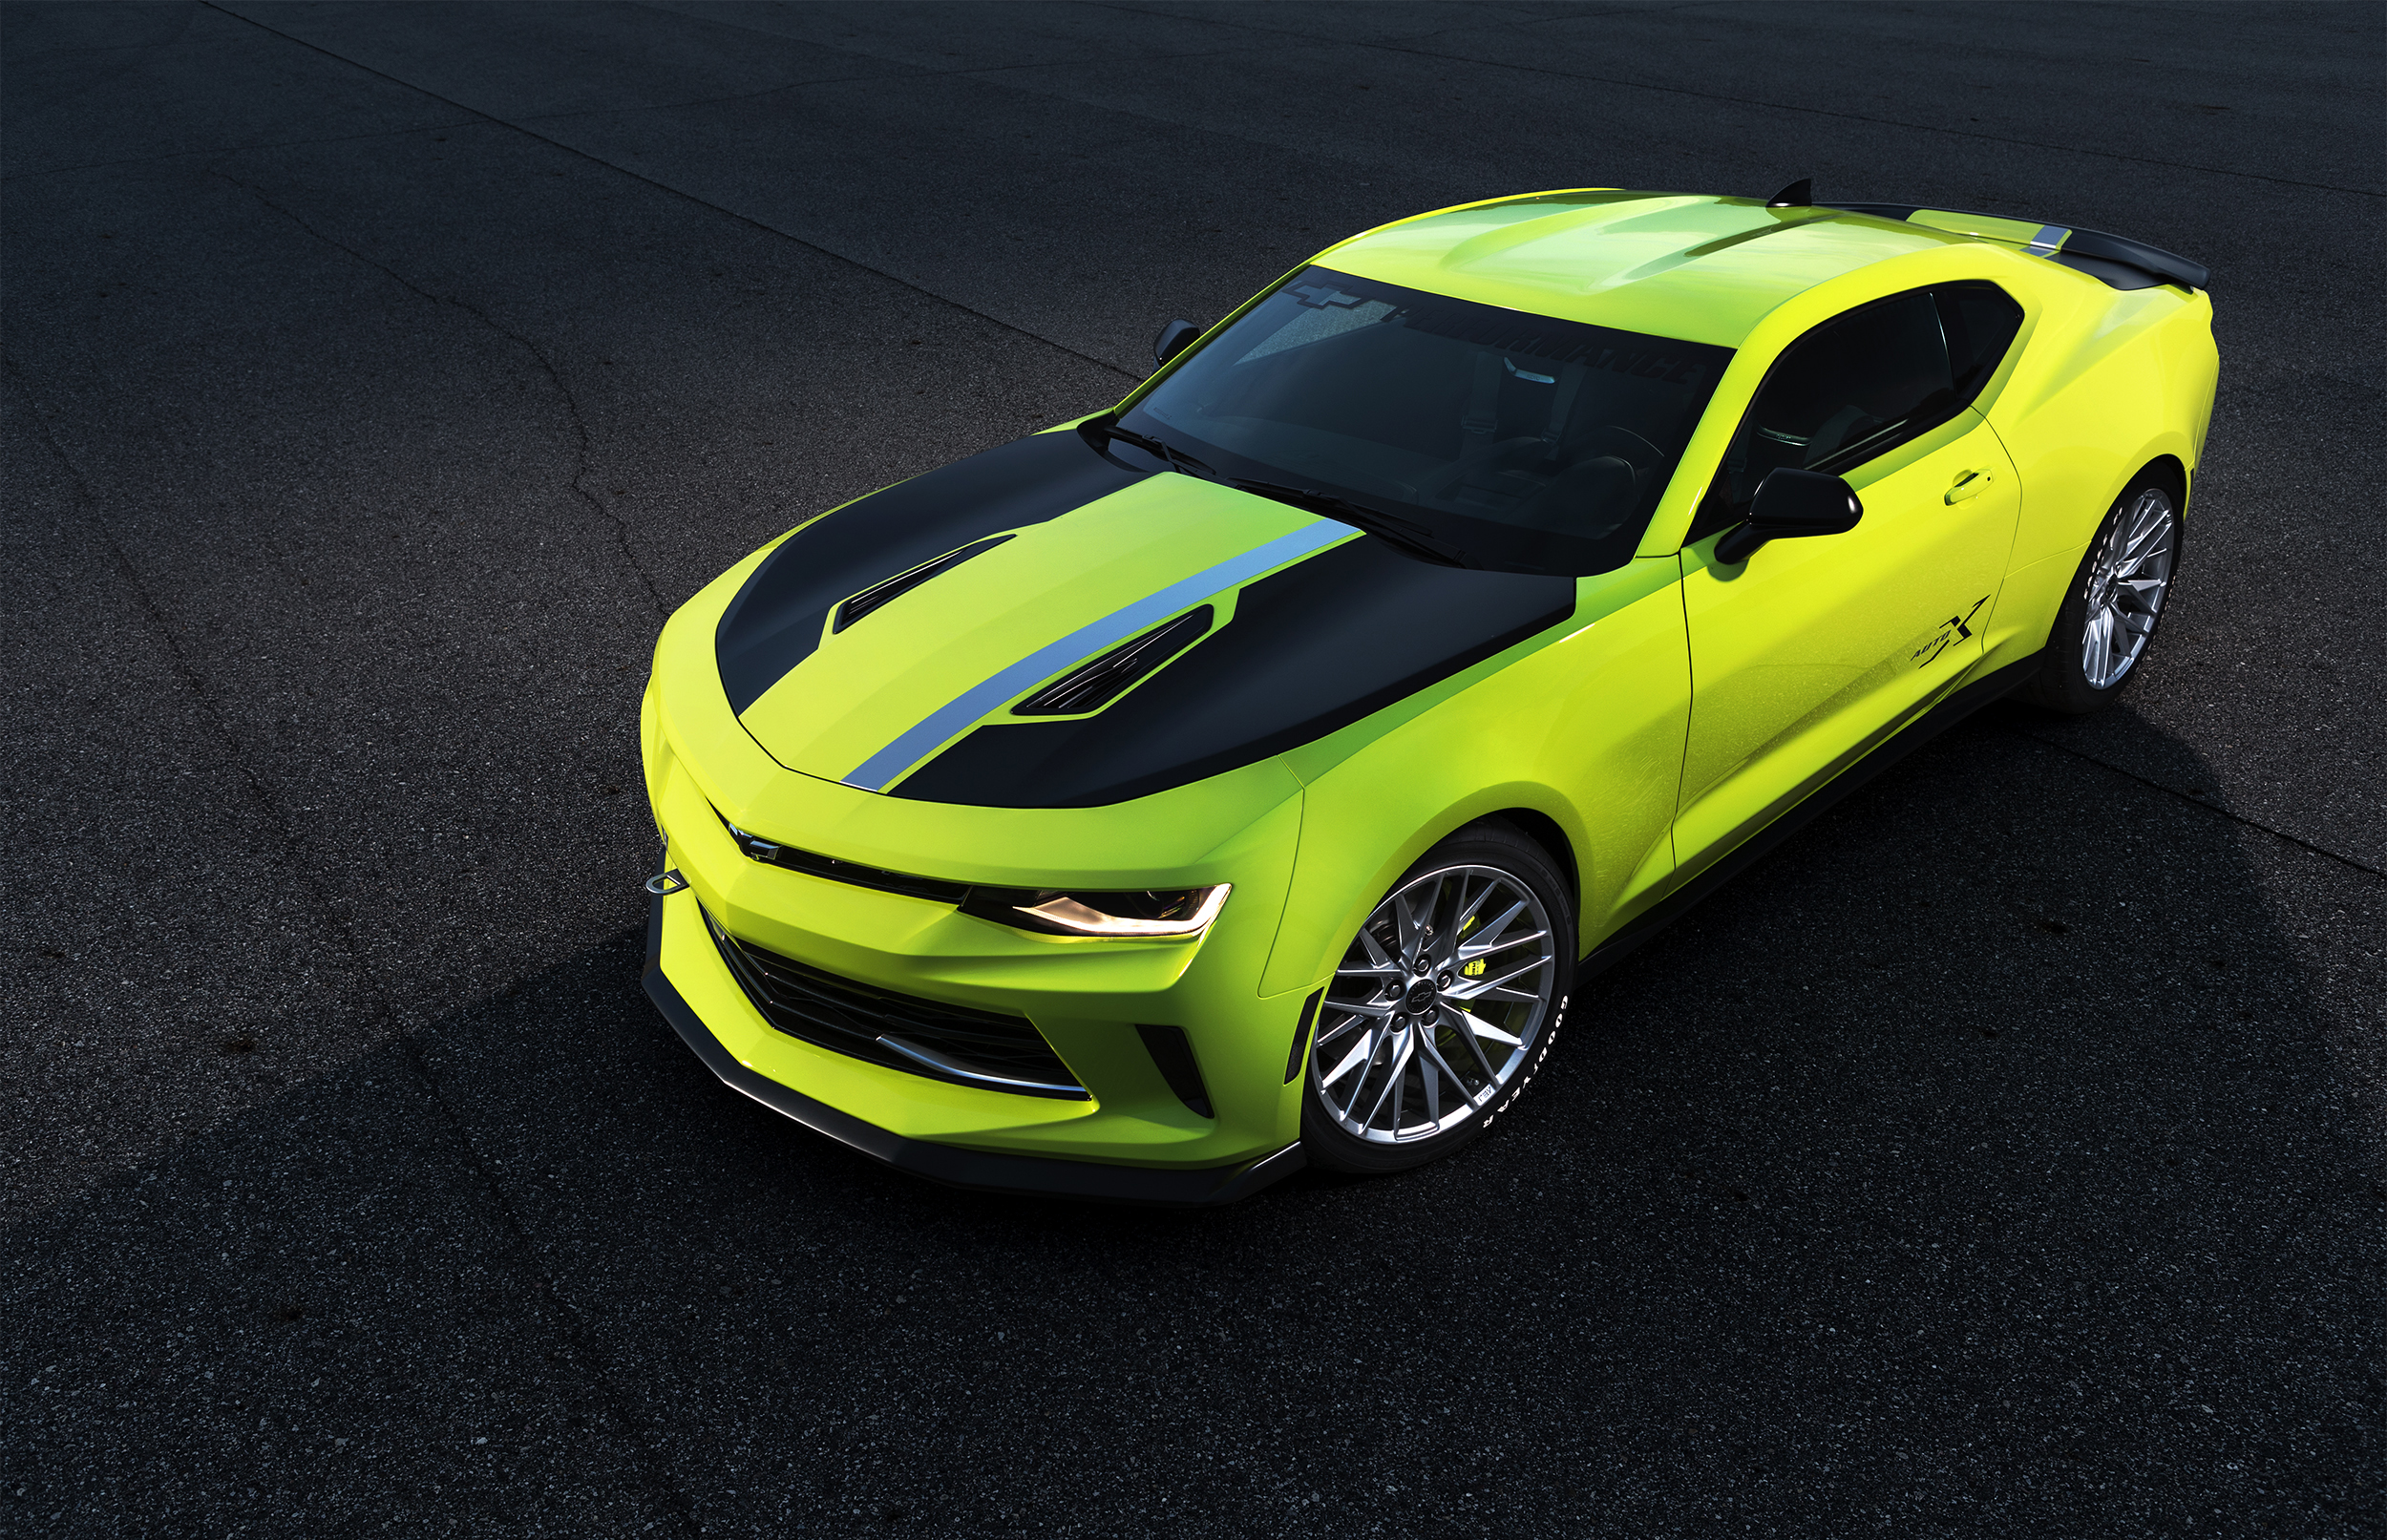 the new camaro turbo autox concept combines the ltg 2 0l turbocharged engine with a performance